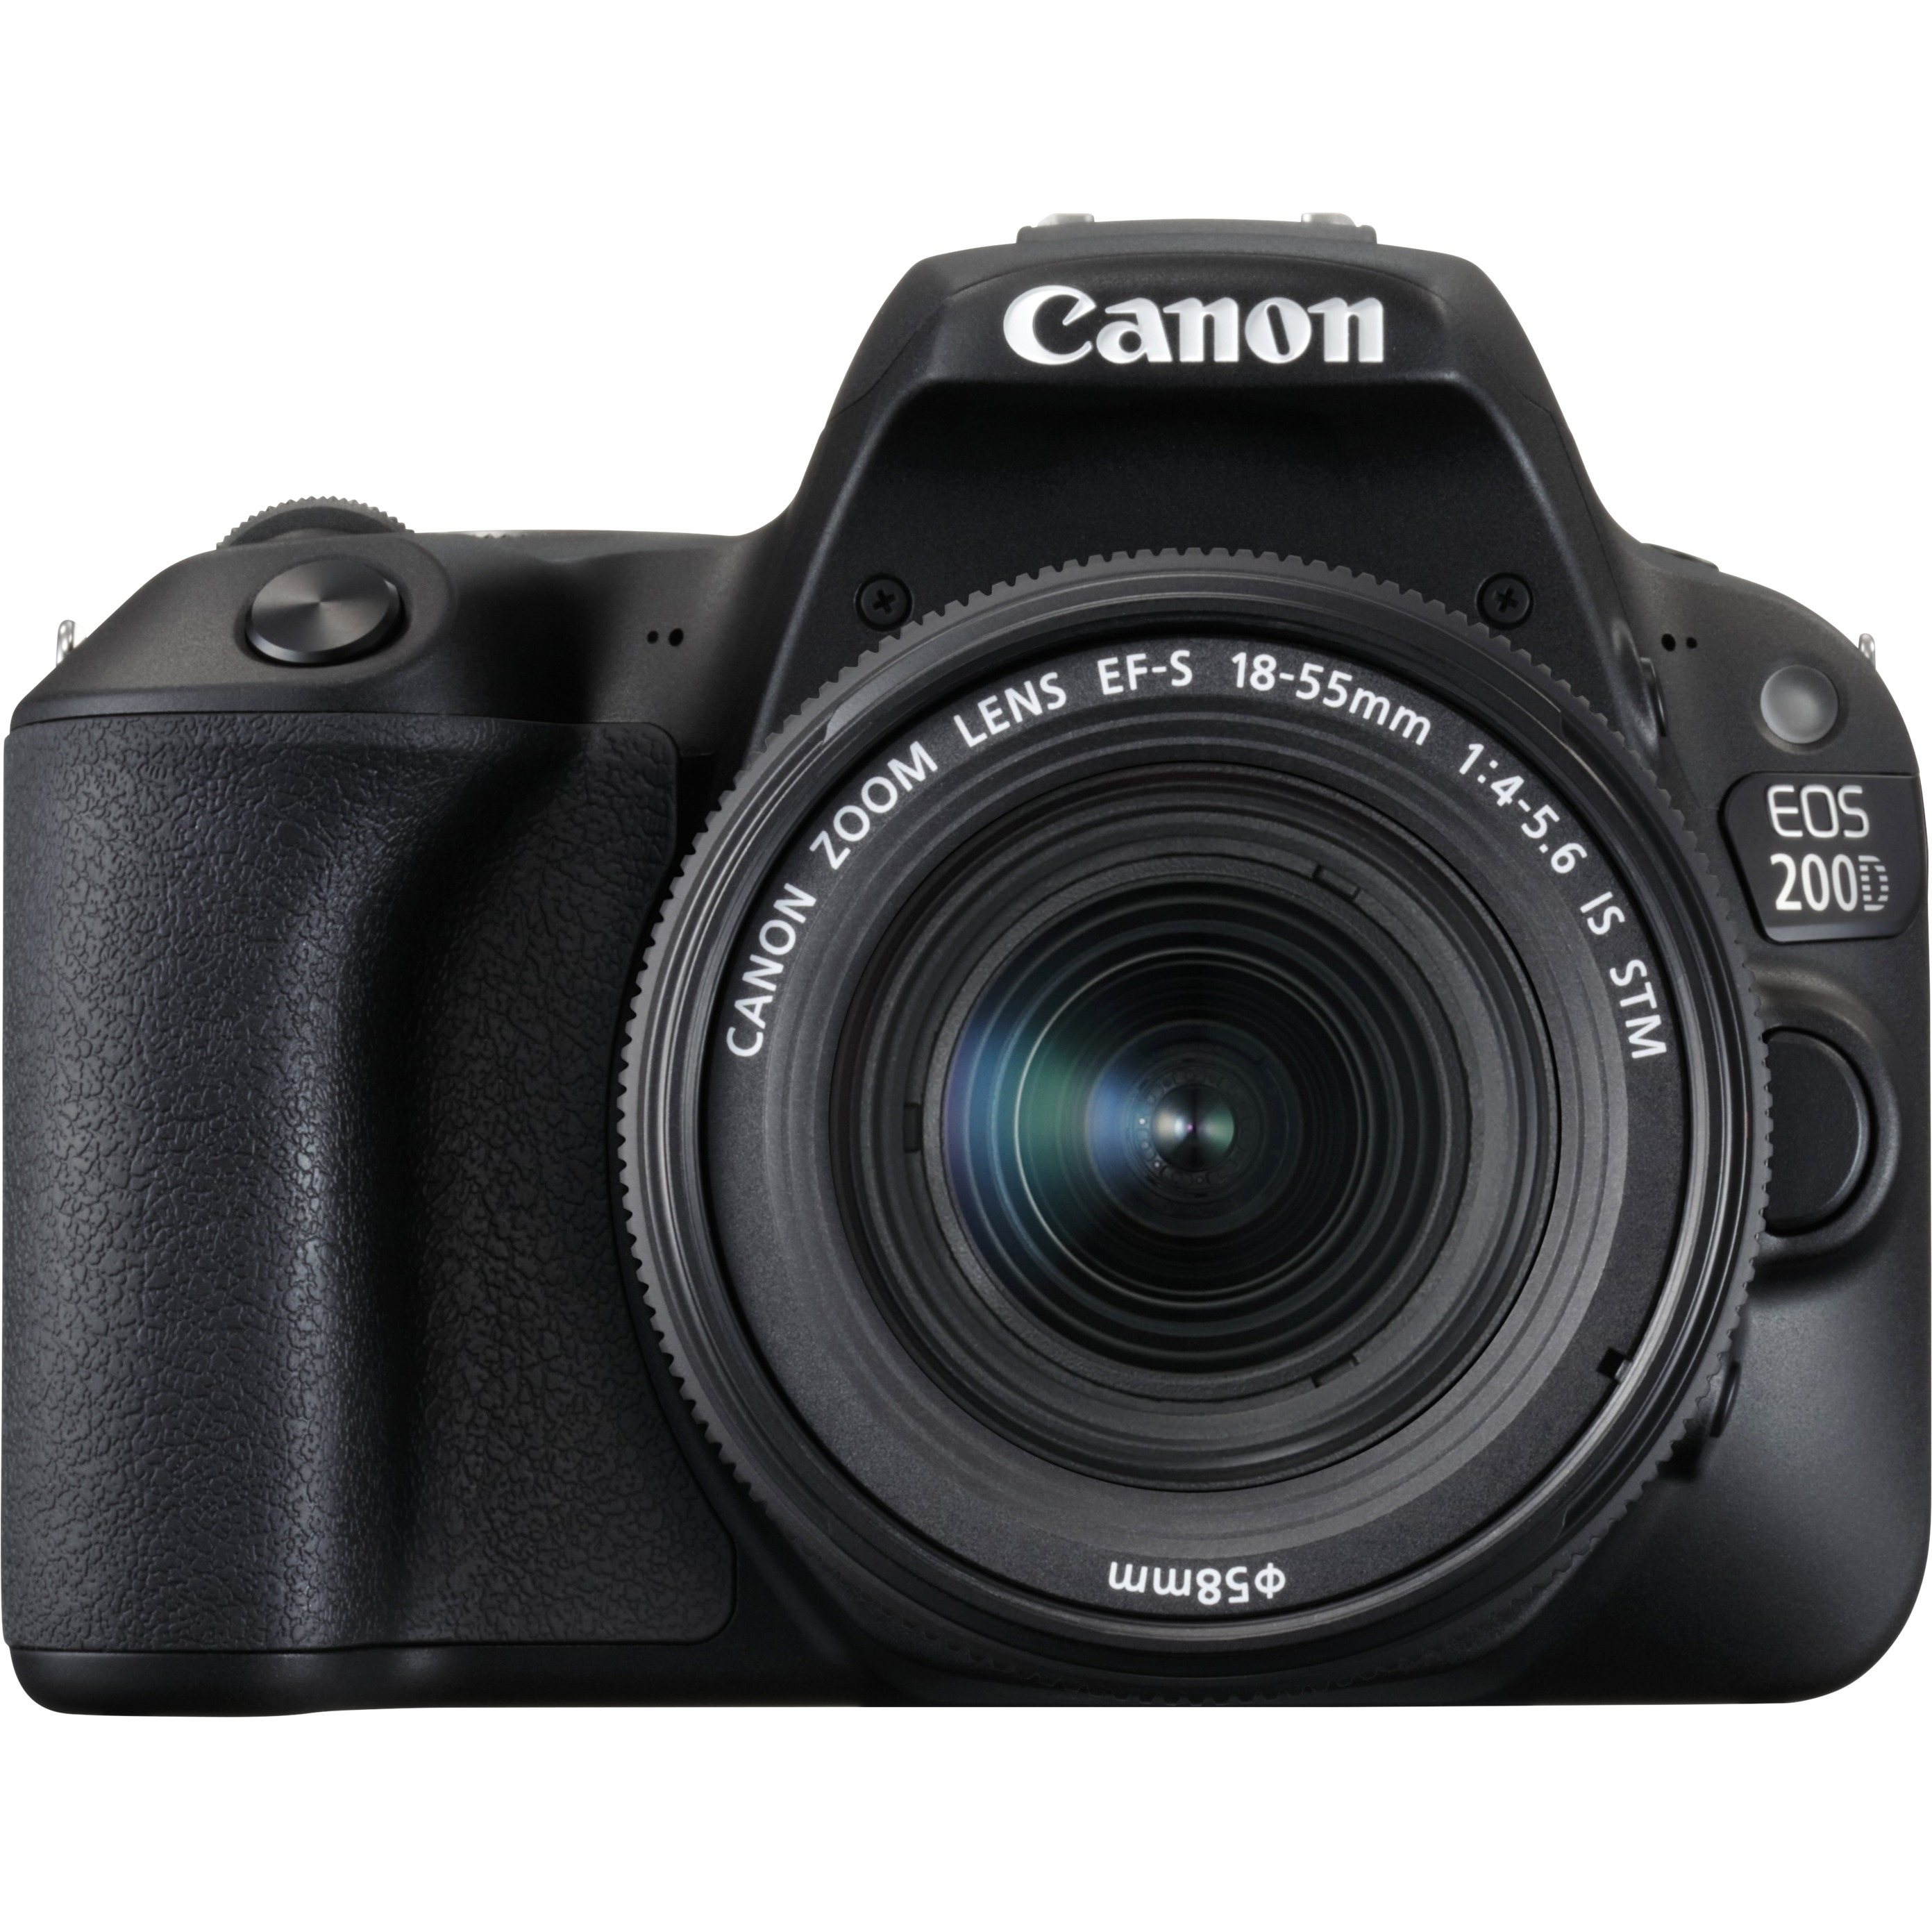 Canon EOS 200D 24.2 Megapixel Digital SLR Camera with Lens - 18 mm - 55 mm - Black - 7.6 cm 3inch Touchscreen LCD - 16:9 - 3.1x Optical Zoom - Optical IS - E-TTL II